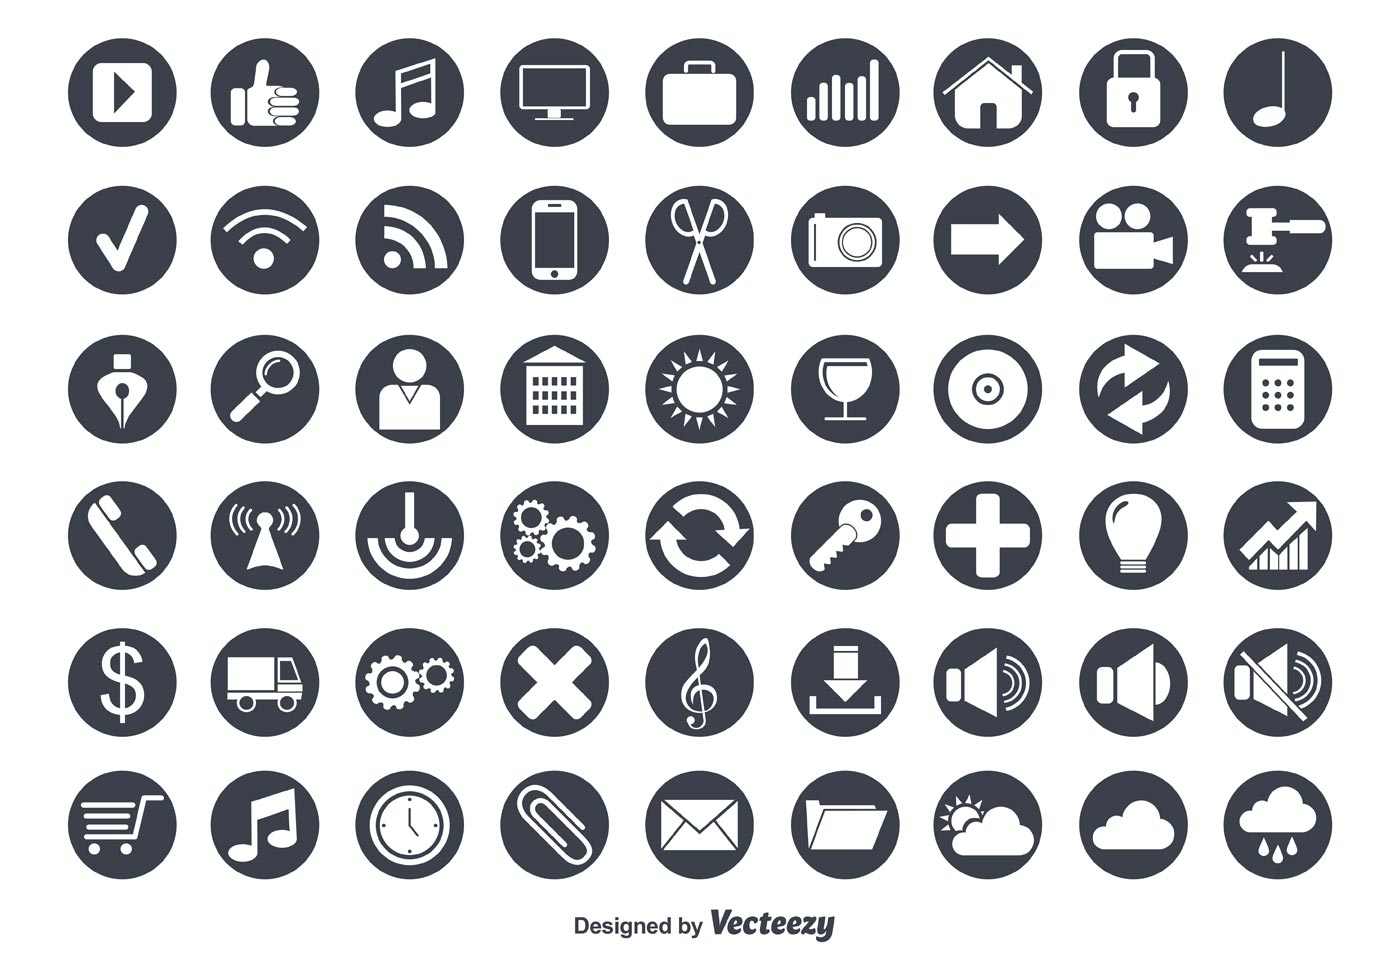 royalty free icons for cv